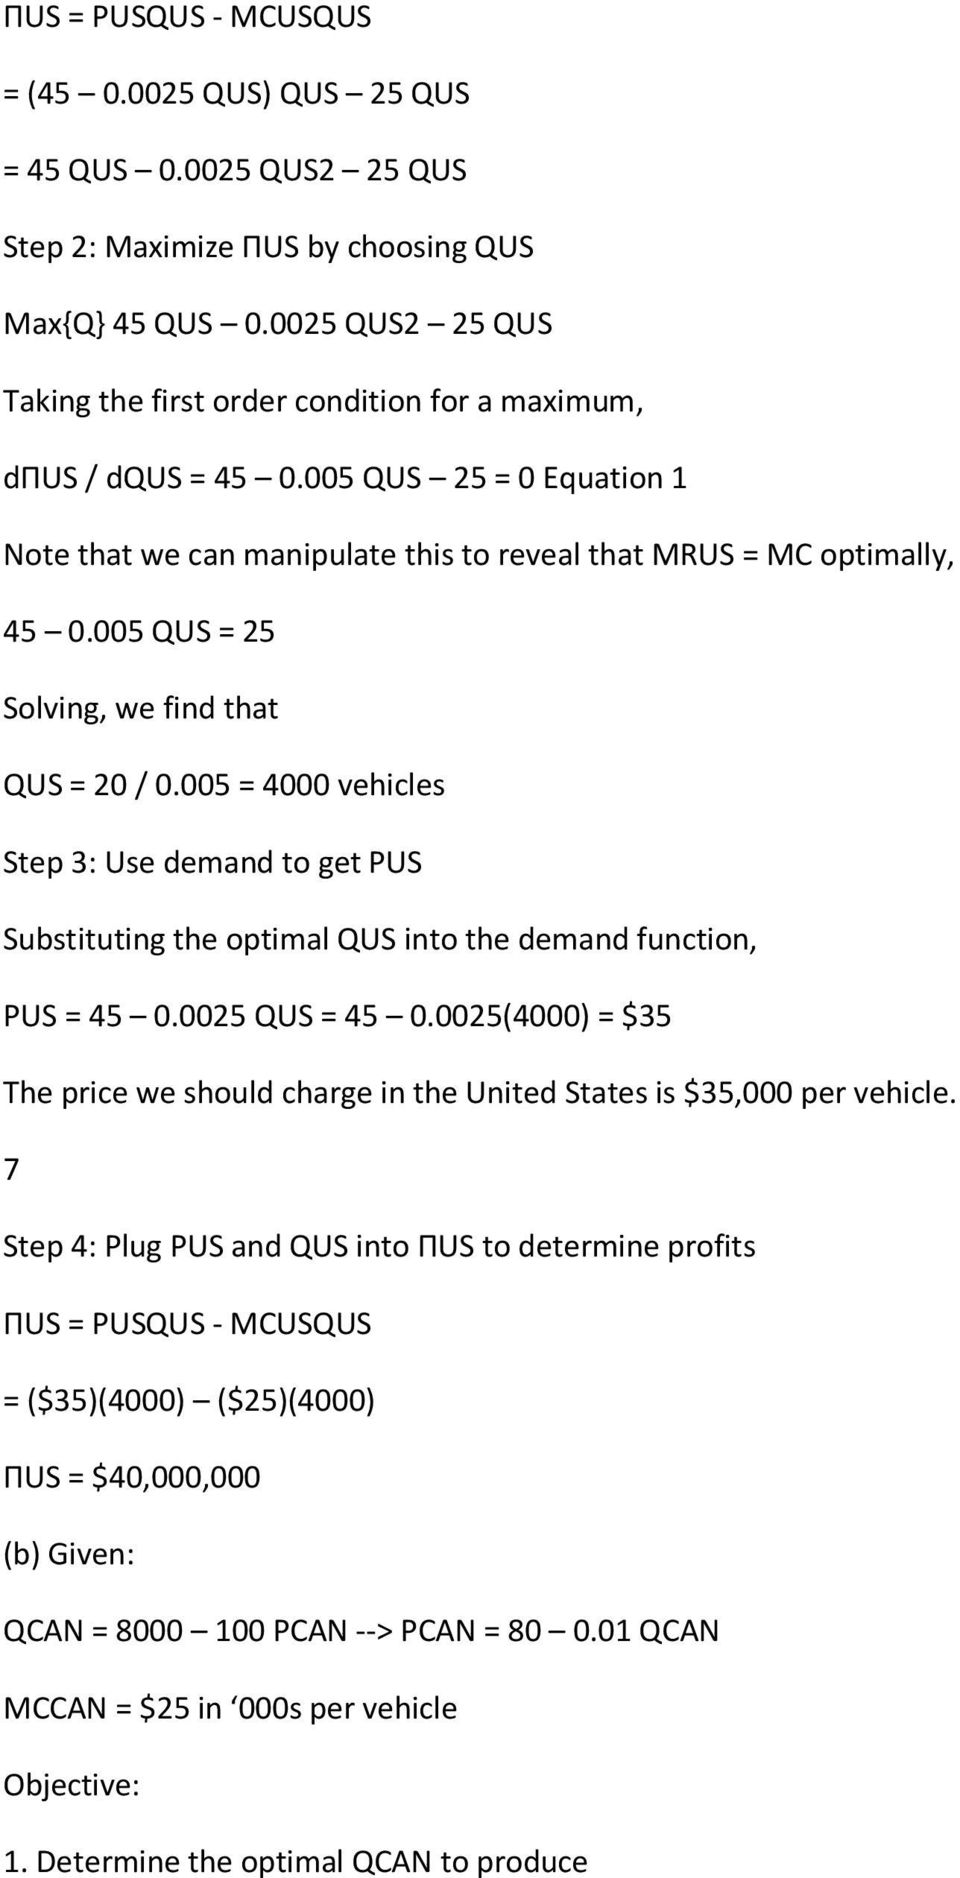 005 QUS = 25 Solving, we find that QUS = 20 / 0.005 = 4000 vehicles Step 3: Use demand to get PUS Substituting the optimal QUS into the demand function, PUS = 45 0.0025 QUS = 45 0.